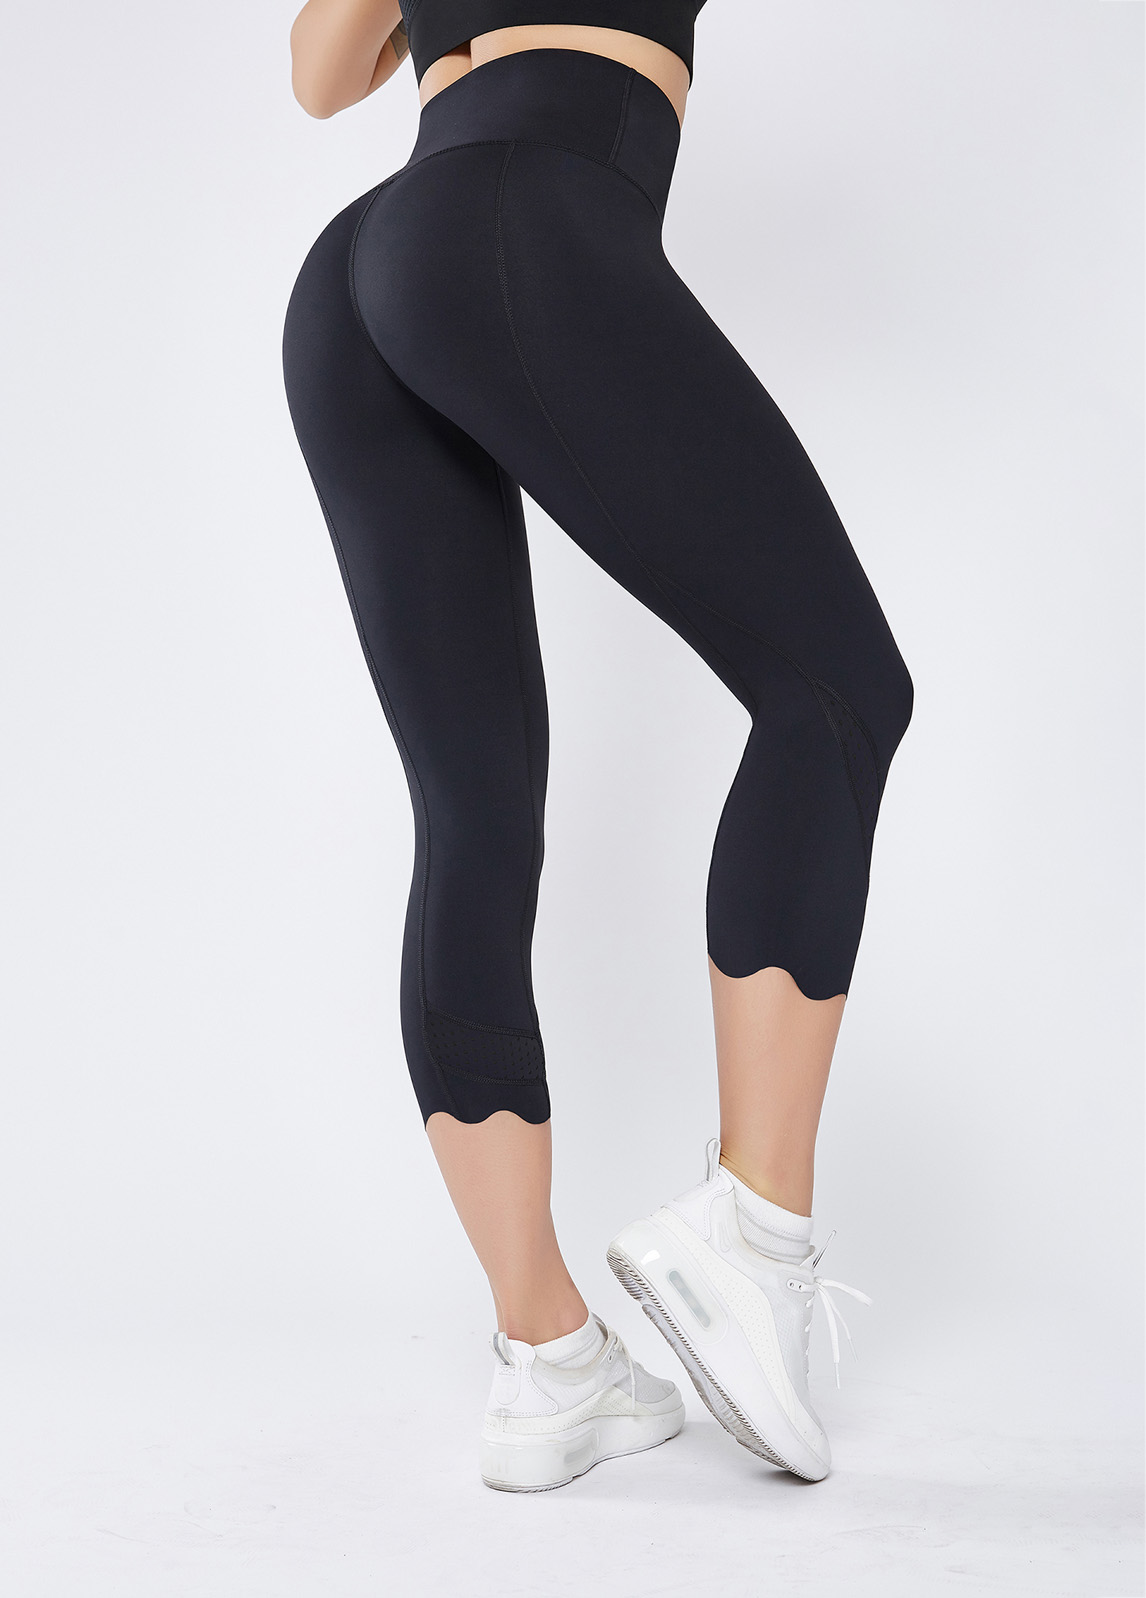 High Waist Black Stretch Quick-drying Breathable Yoga Pants